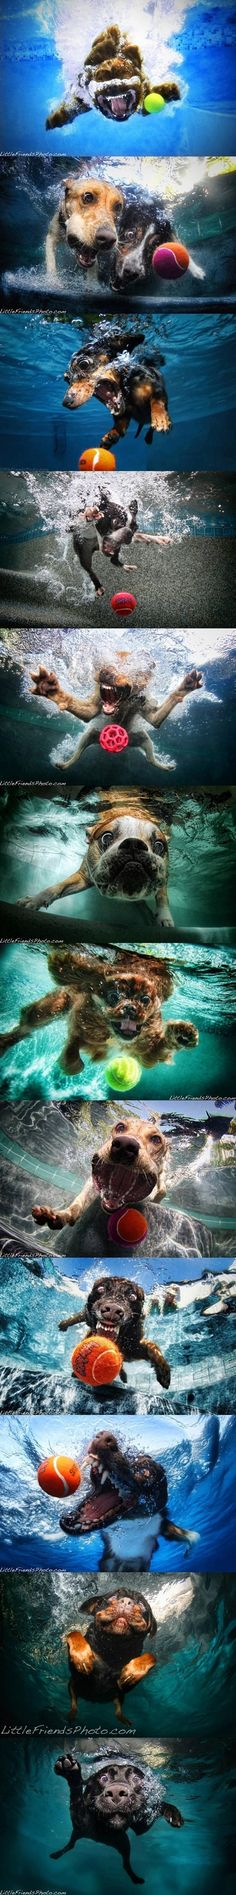 Dogs under water | Postris